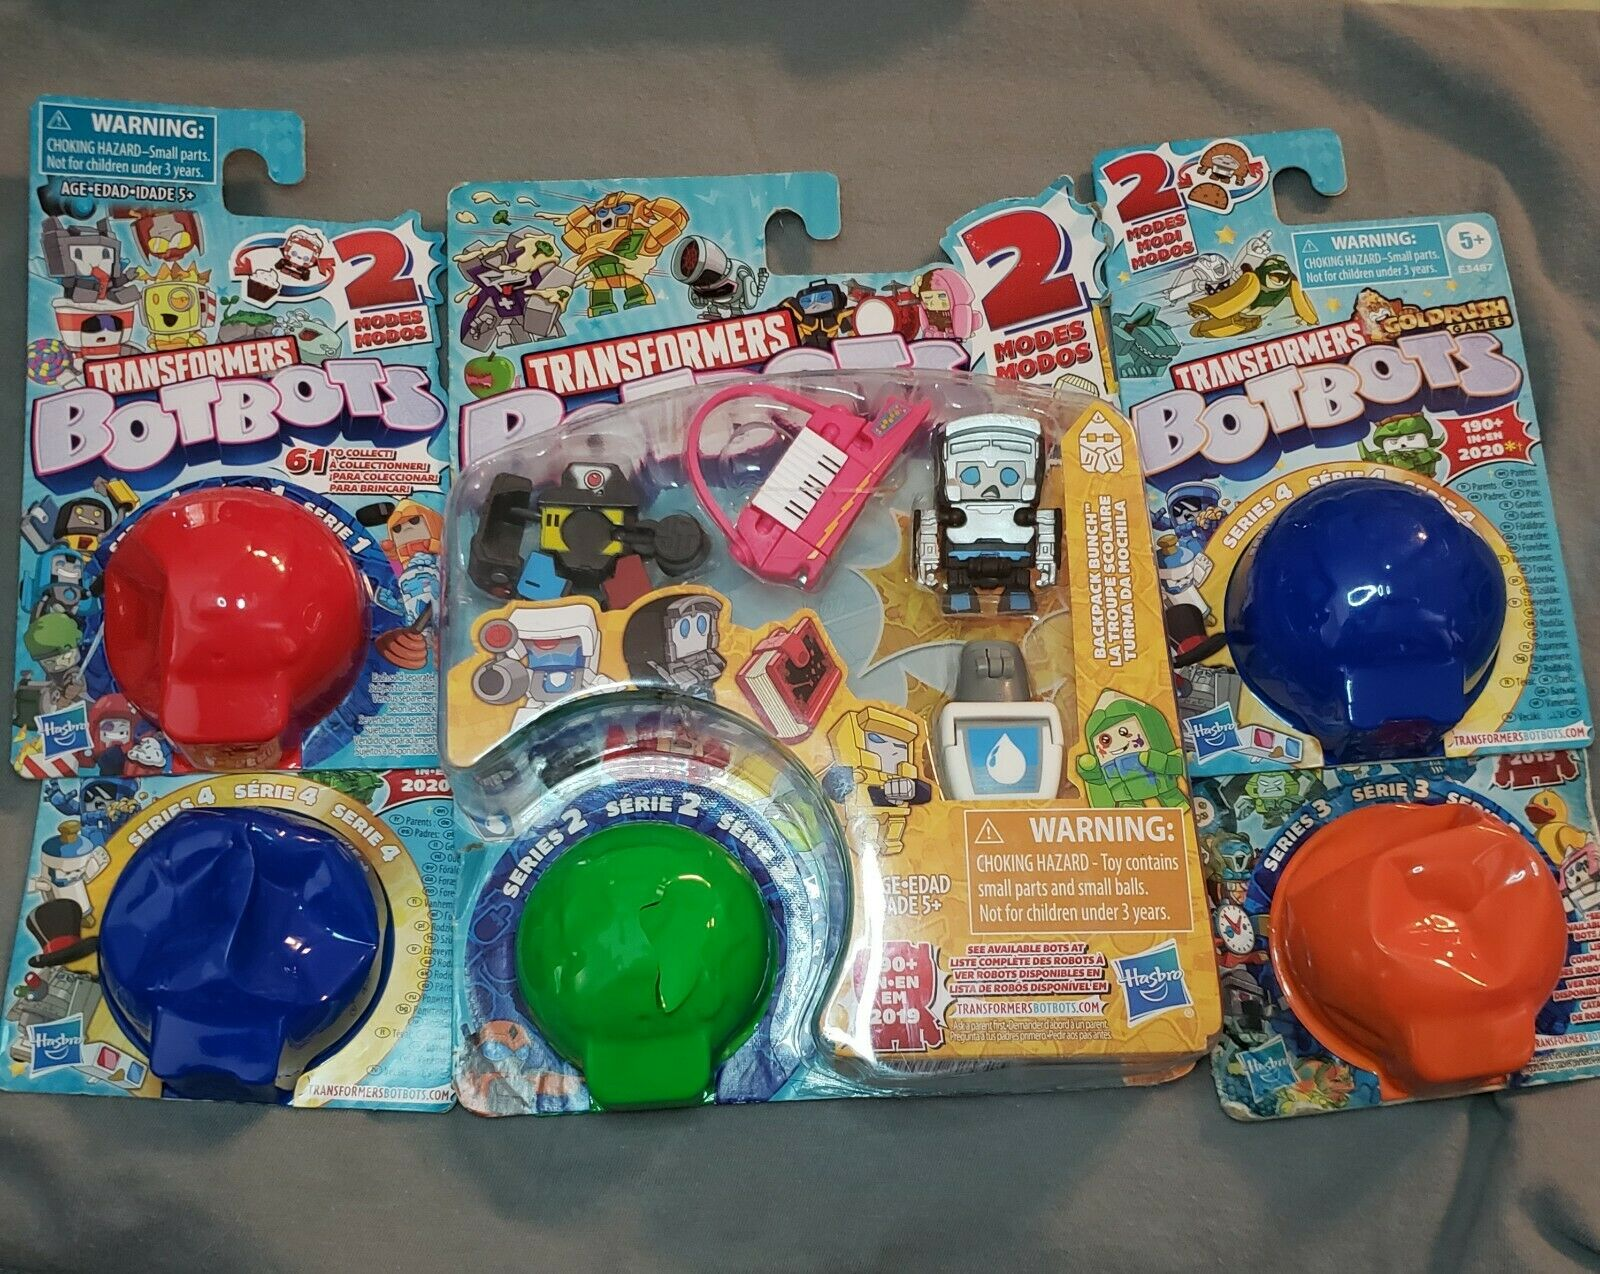 Lot of 3 Transformers BotBots Series 3 Mystery Pack Packs Orange New